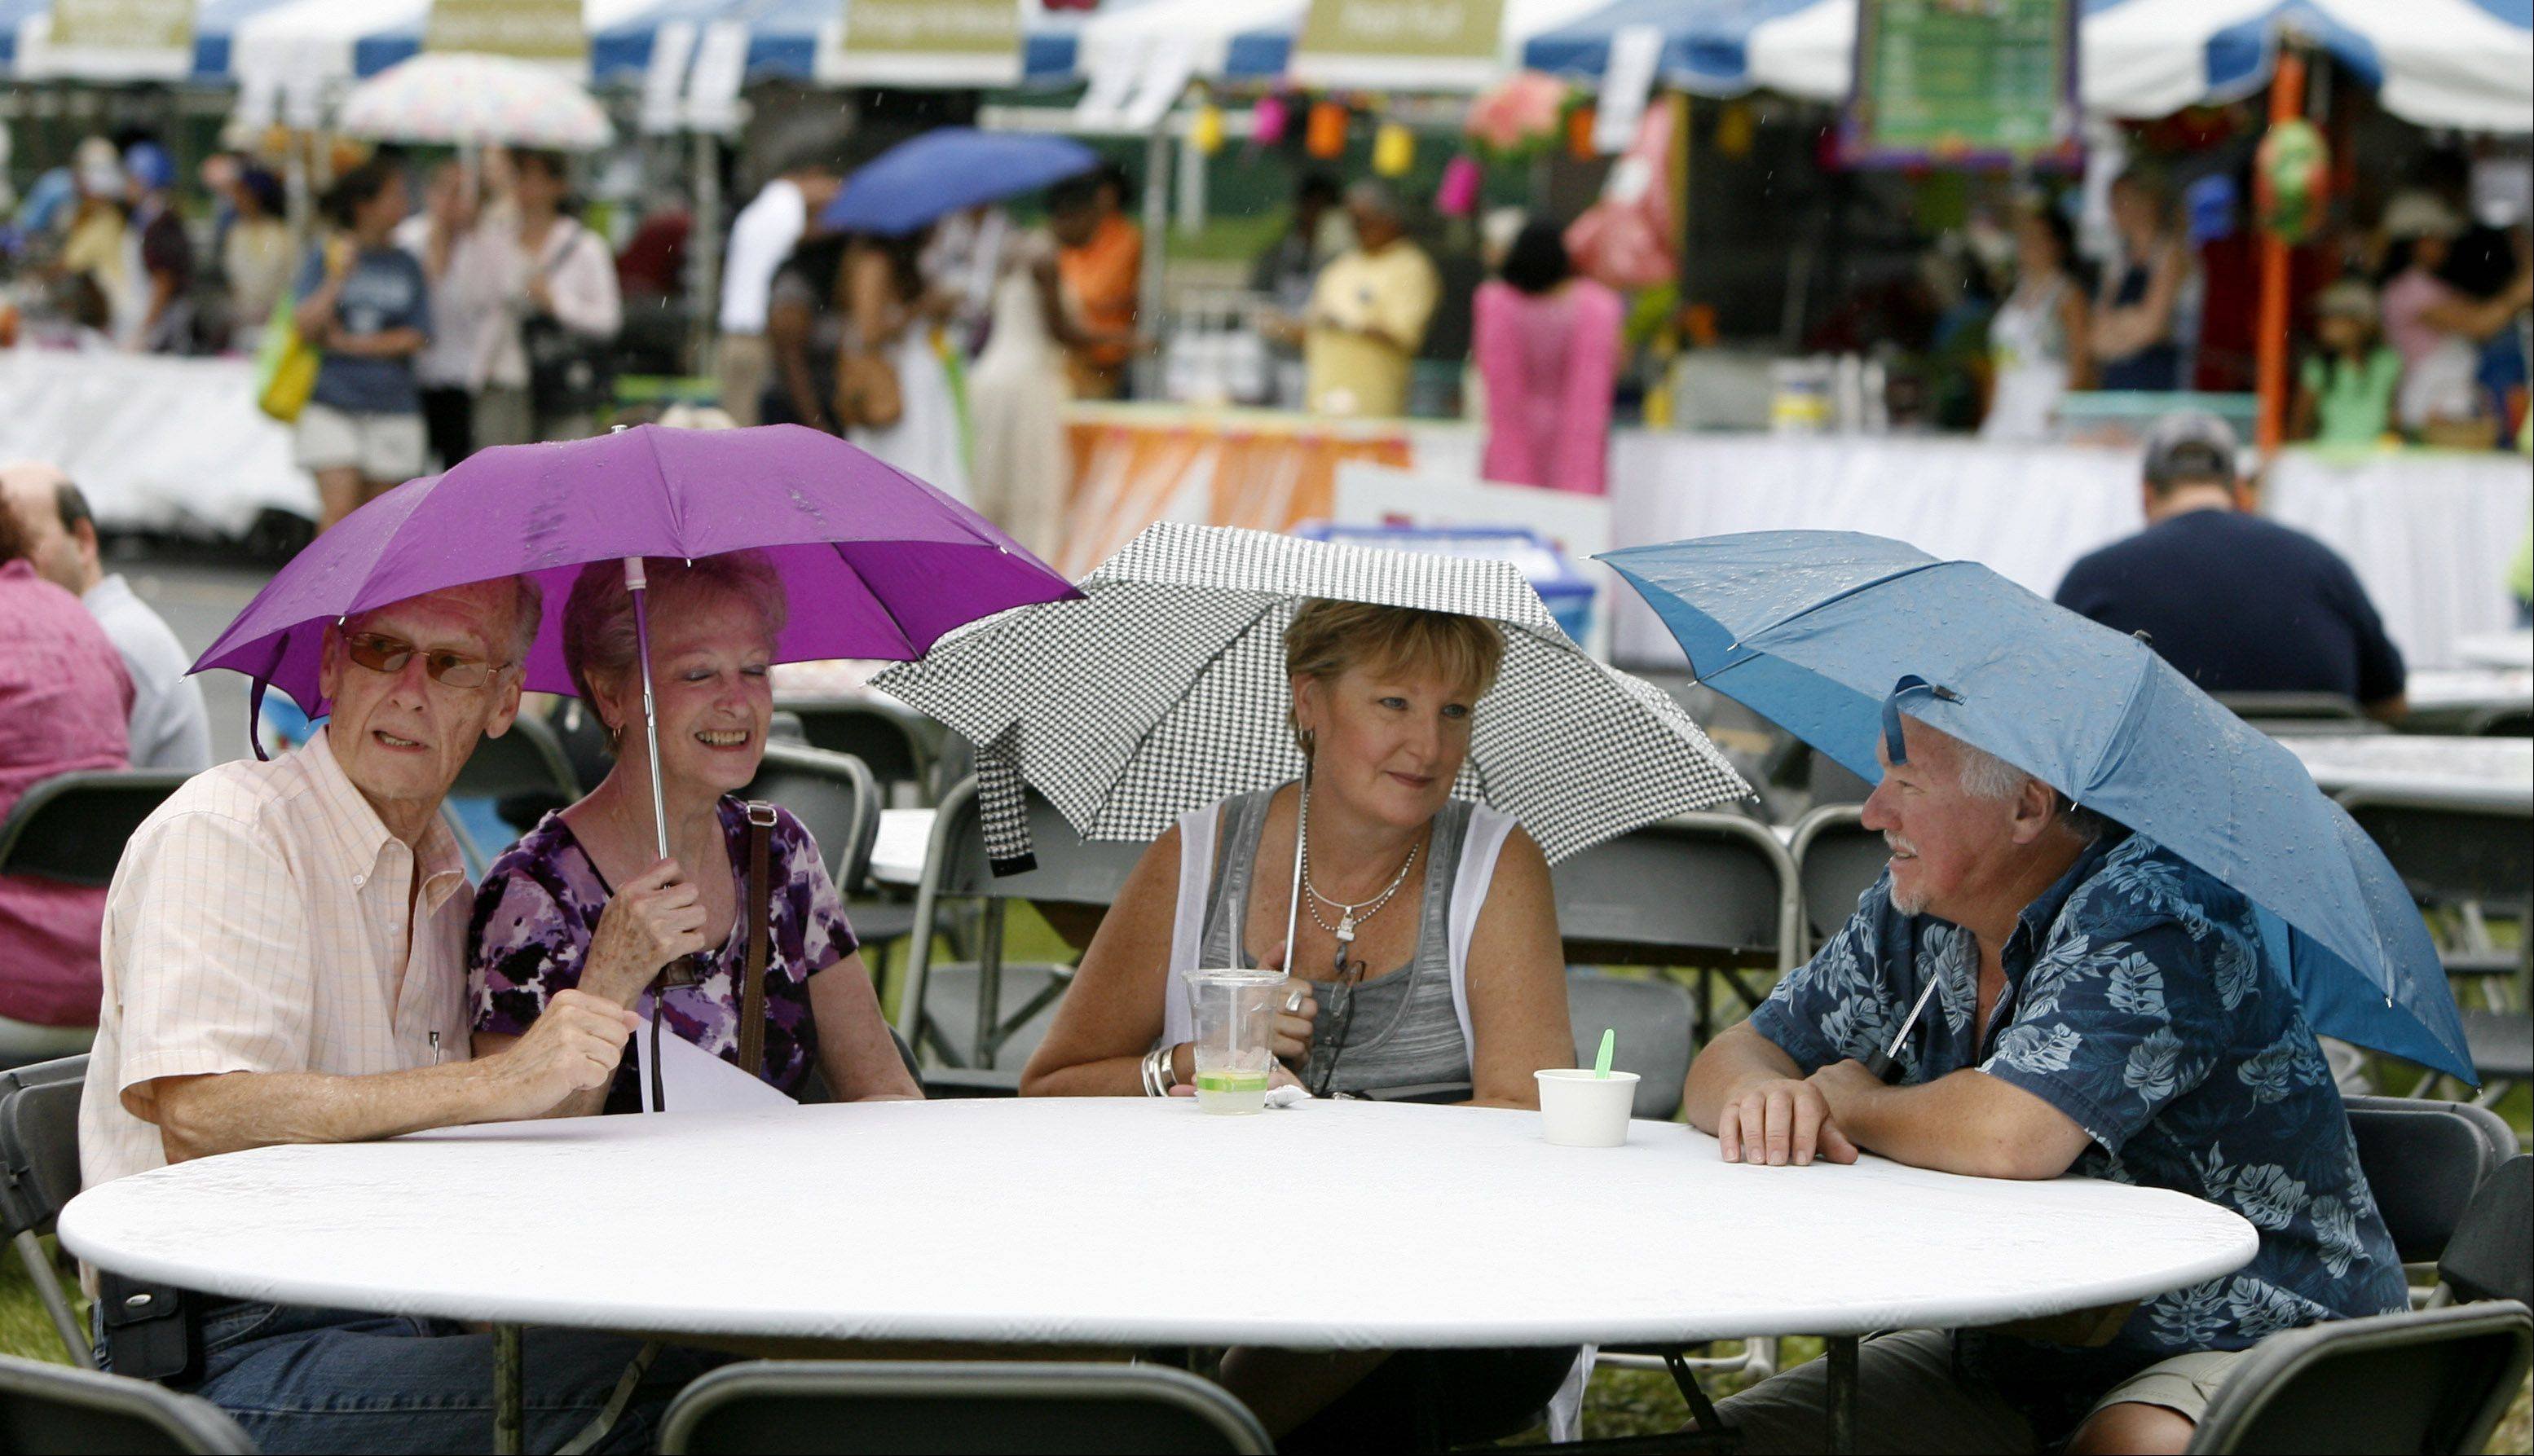 'Veg-curious' crowd checks out Naperville's Veggie Fest